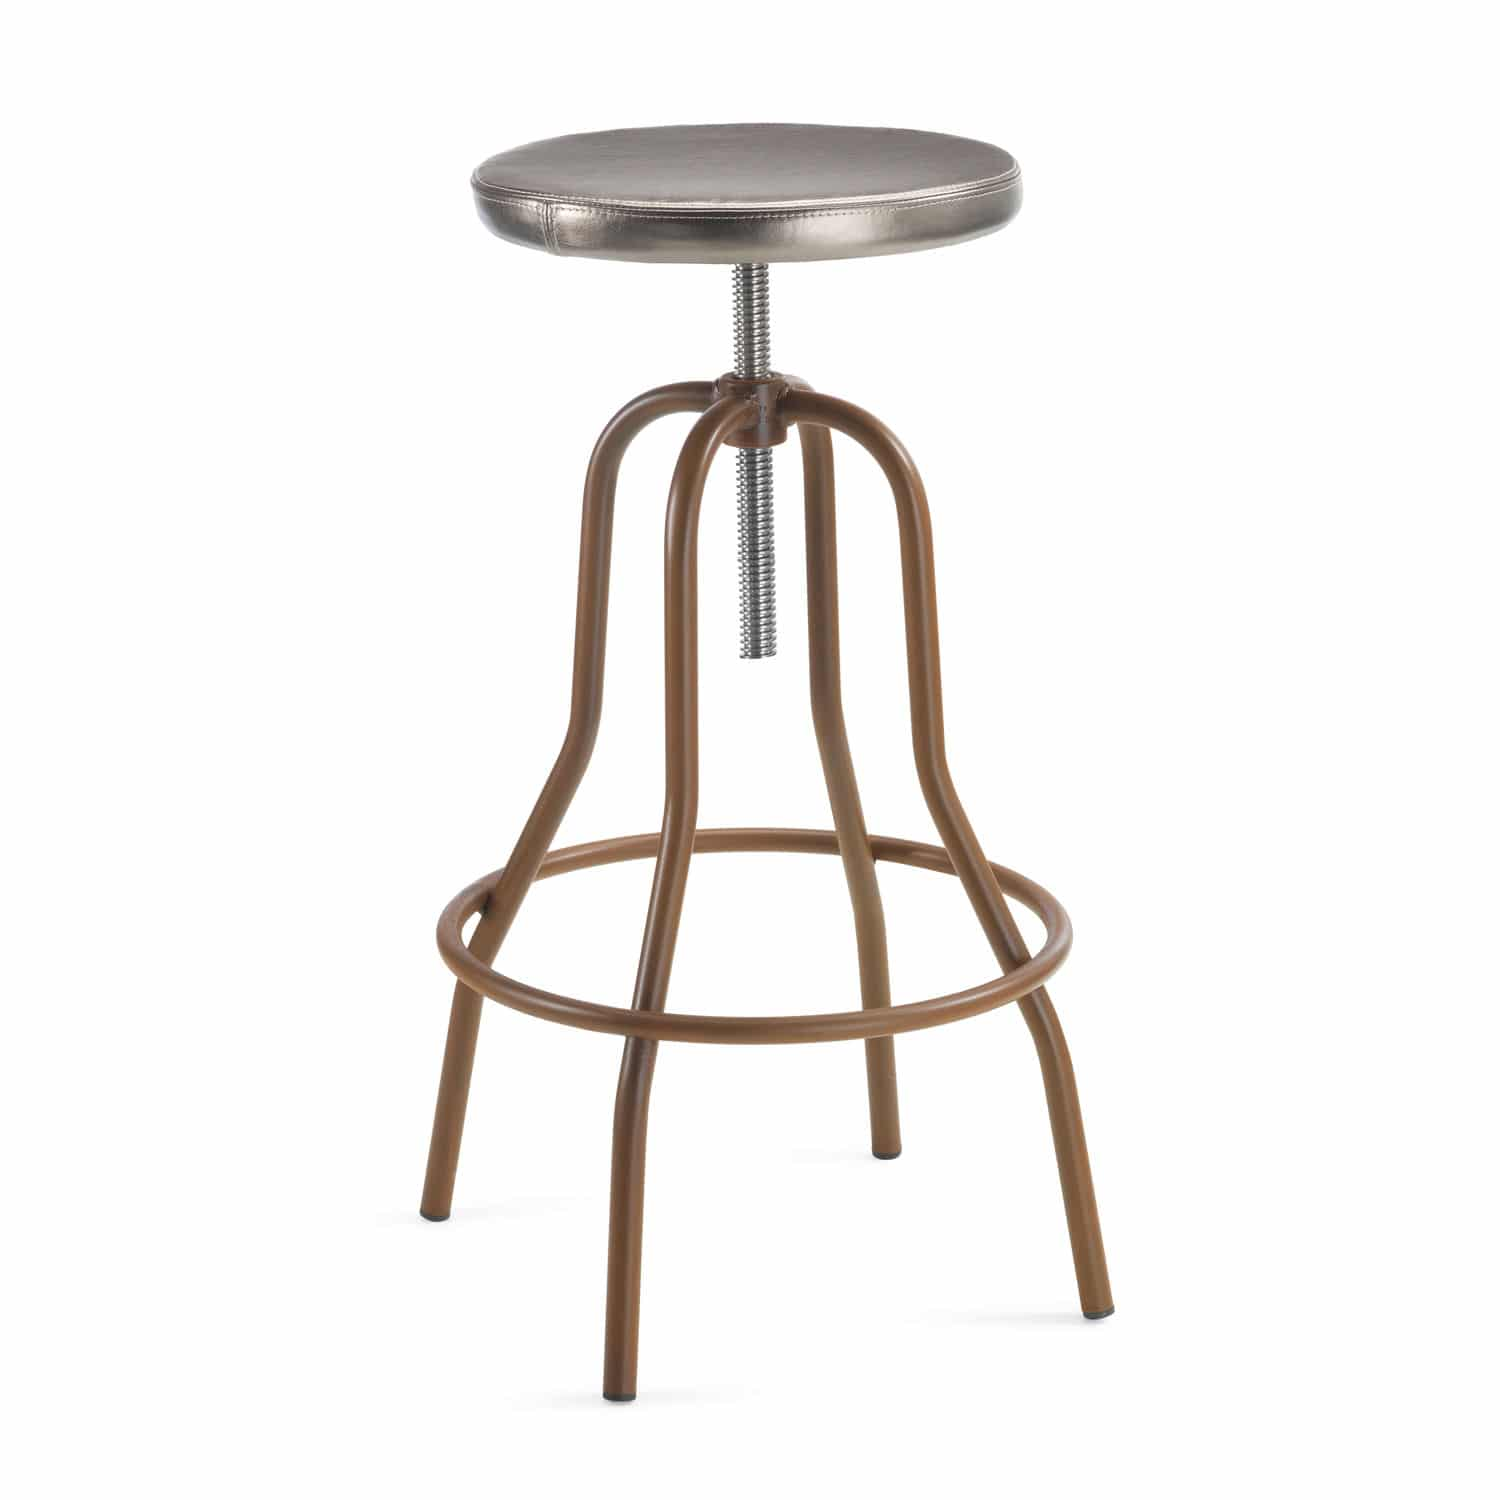 Awe Inspiring Contemporary Bar Stool Leather Painted Steel Natural Andrewgaddart Wooden Chair Designs For Living Room Andrewgaddartcom